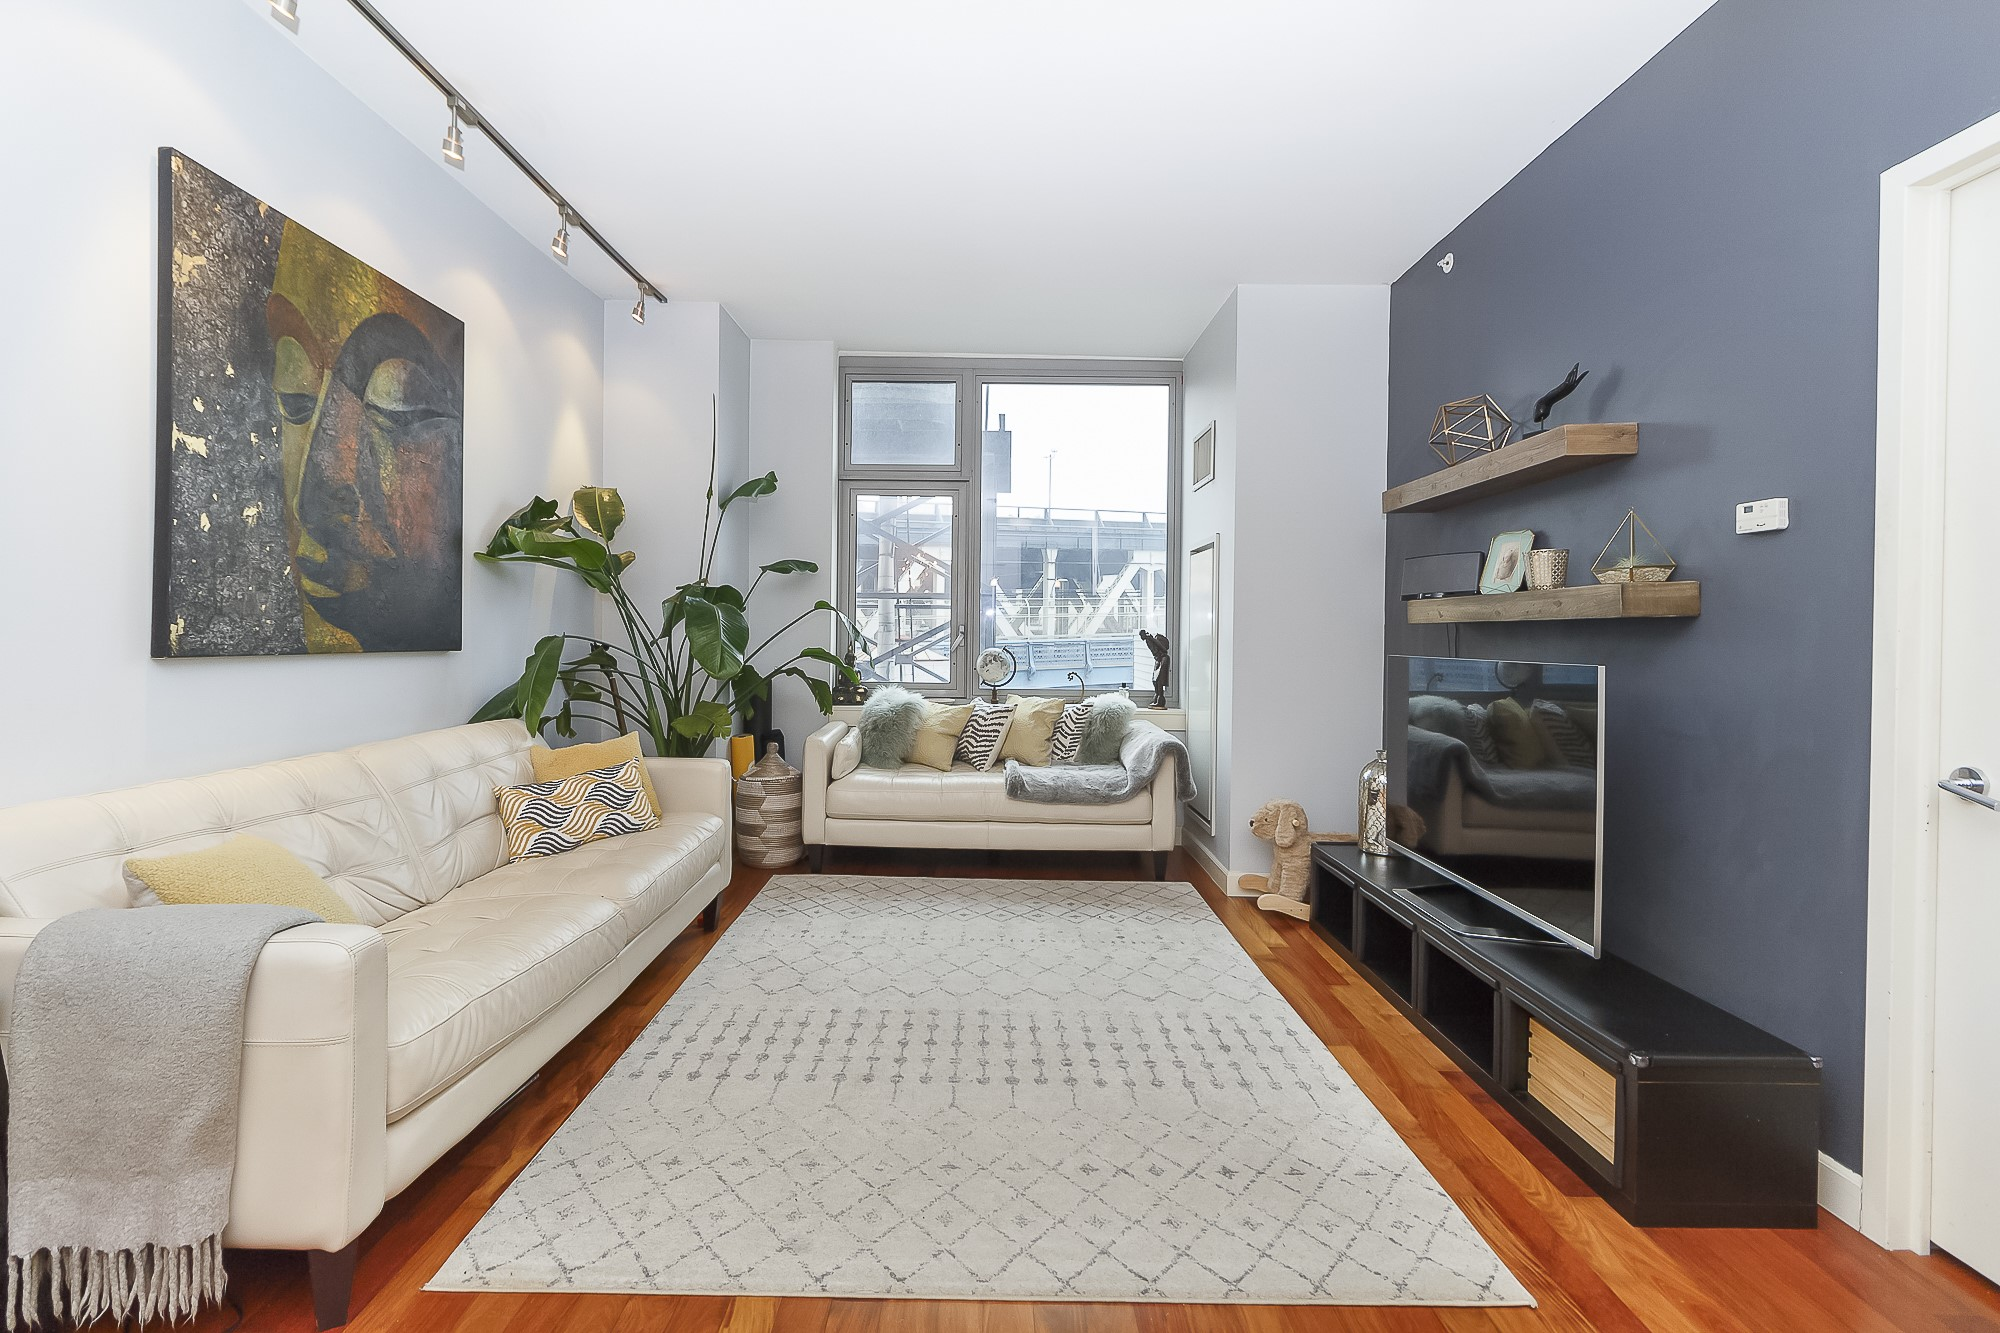 Renovated one bedroom apartment in Dumbo, Brooklyn